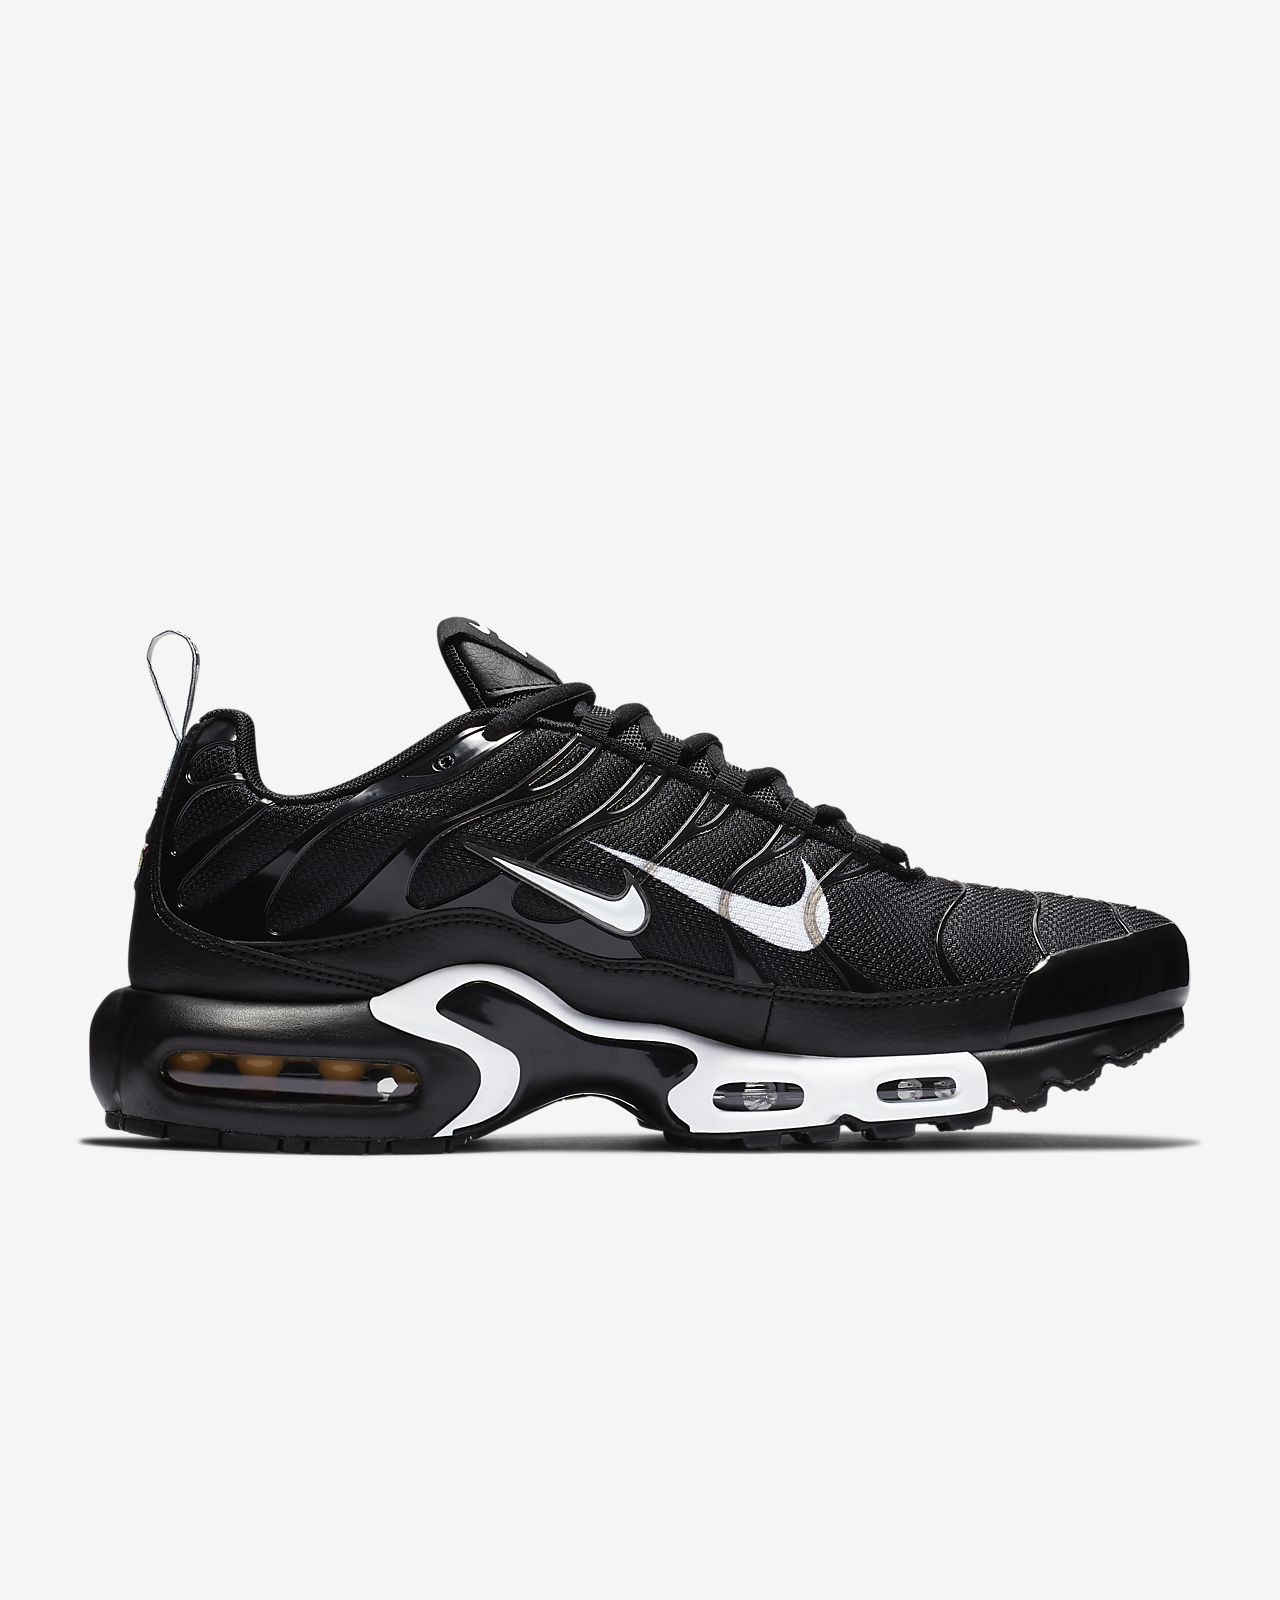 newest f7e38 76064 air-max-plus-shoe-4JVZVl.jpg